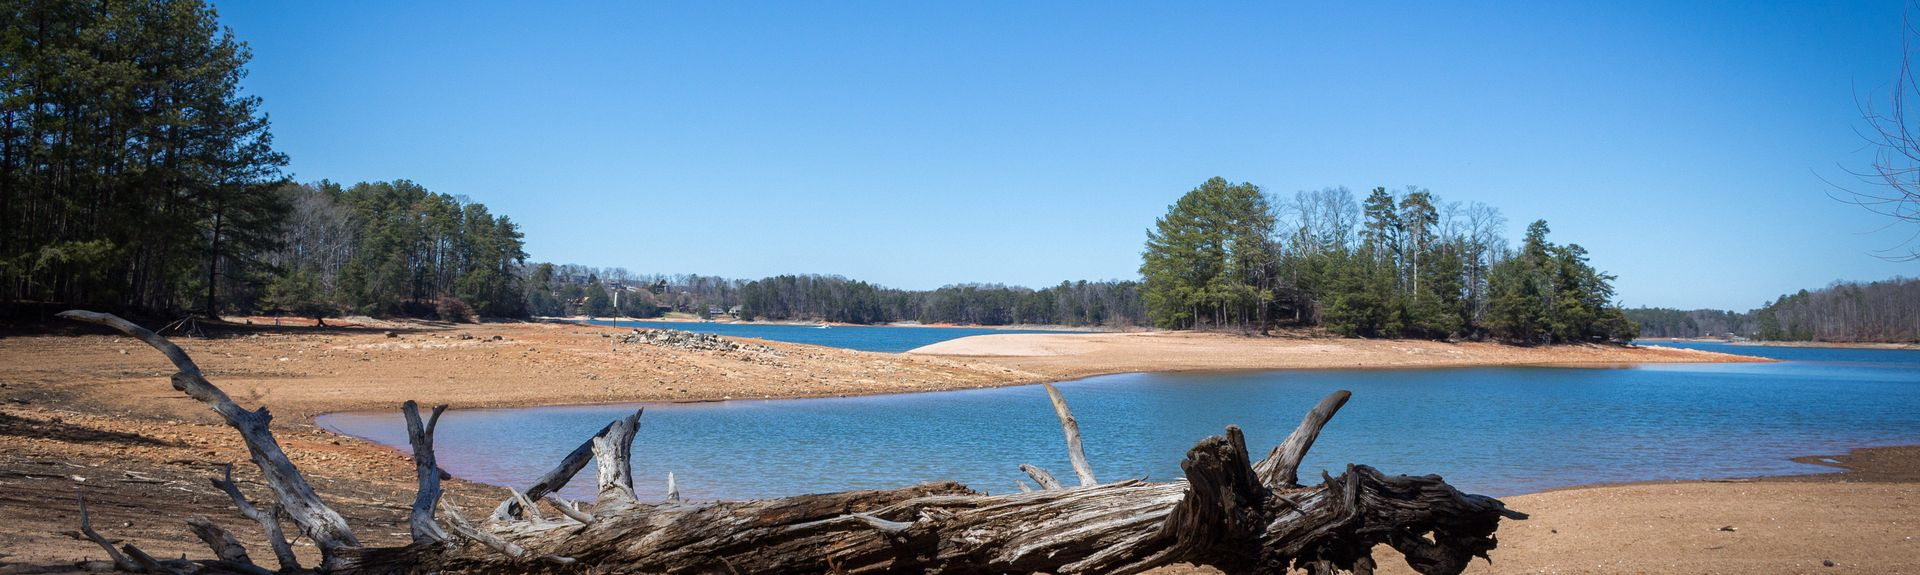 Lake Lanier, Gainesville, Georgia, United States of America